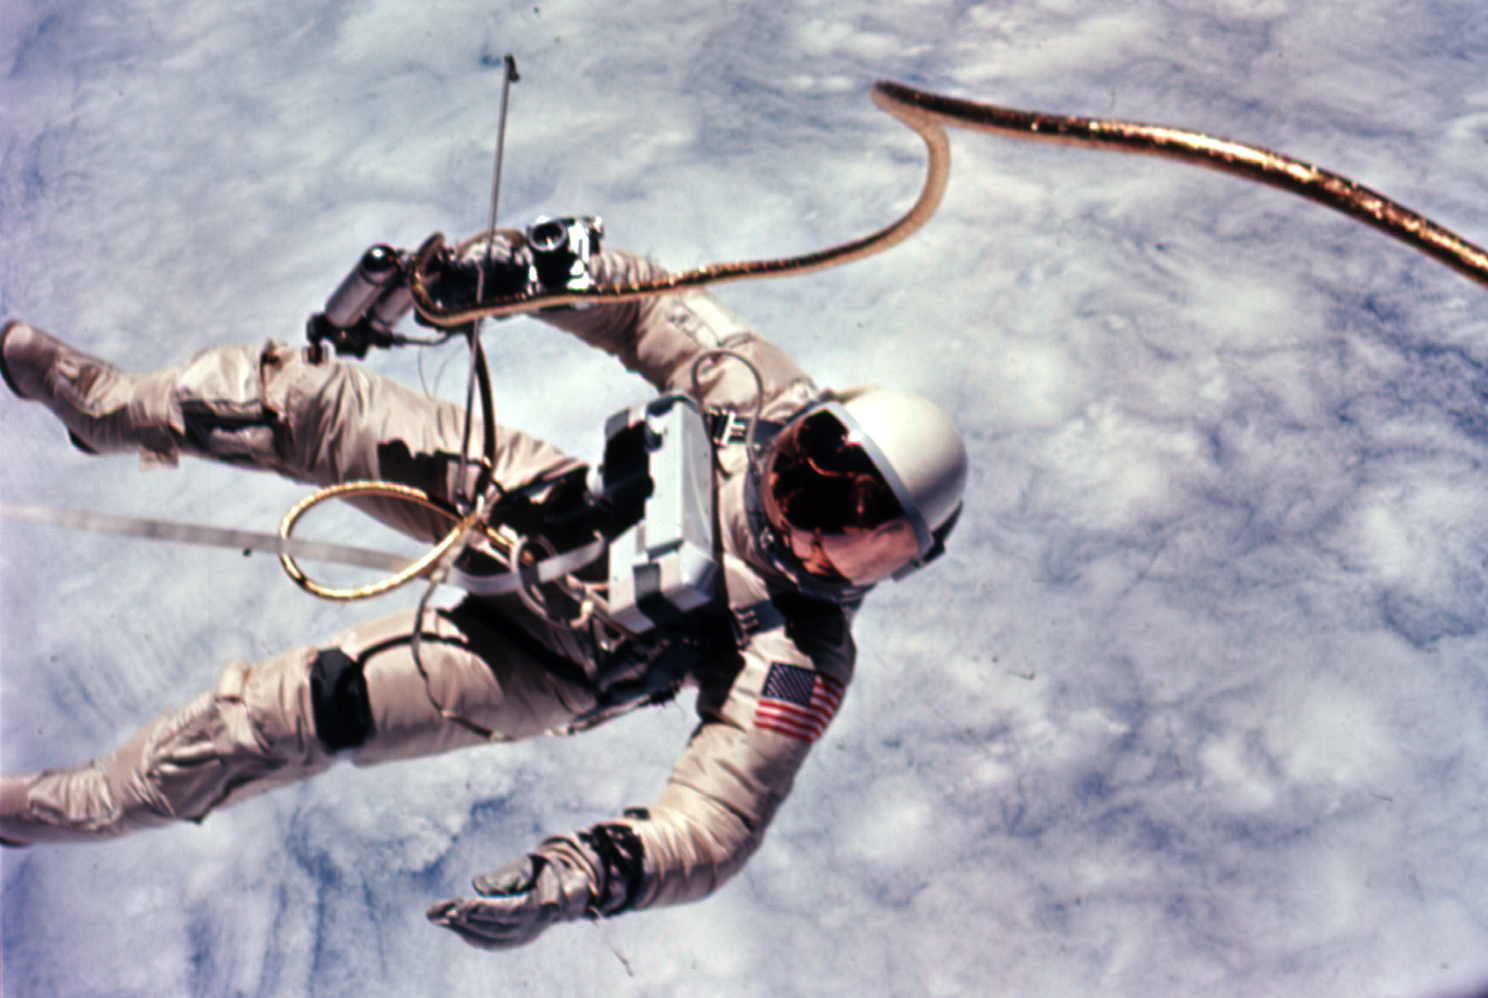 Astronaut_Edward_White_first_American_spacewalk_Gemini_4